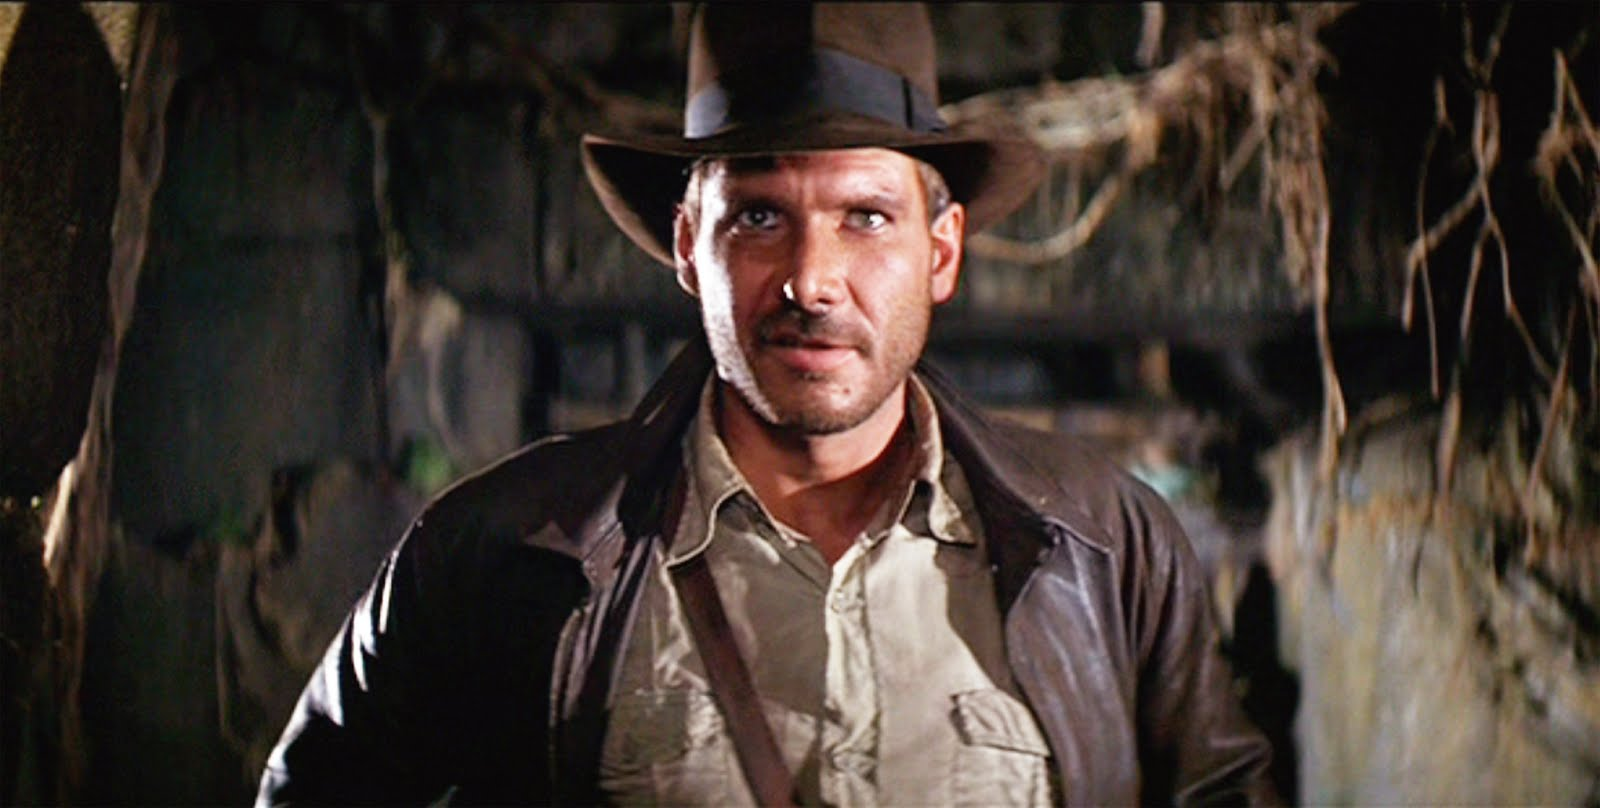 raiders of the lost ark Harrison ford and john ryhs-davies on the set of raiders of the lost ark  there were pages and pages of visual description but not much.